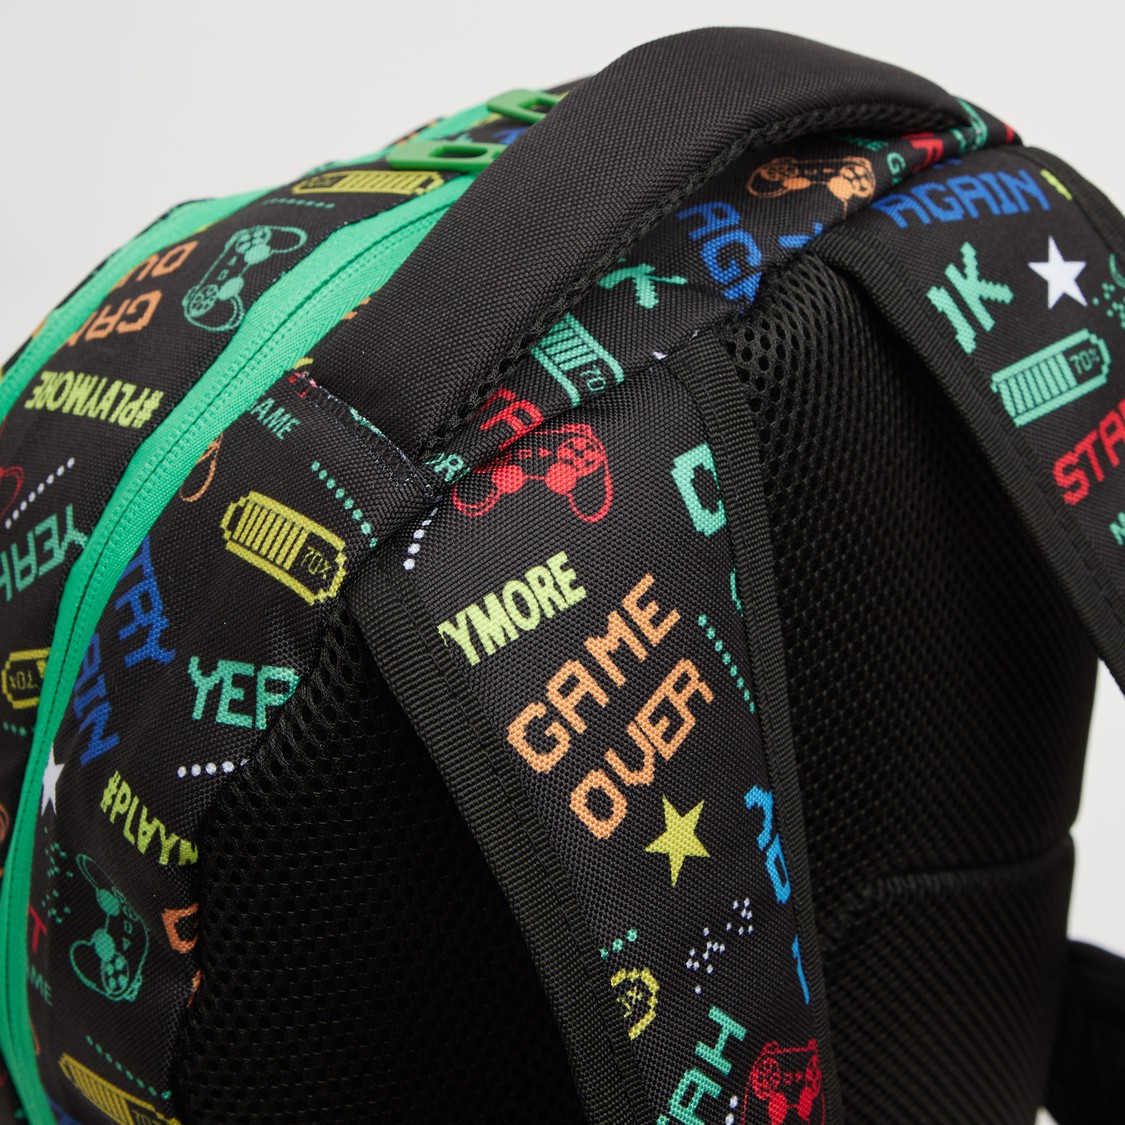 Printed Backpack with Adjustable Straps and Zip Closure - 18 Inches